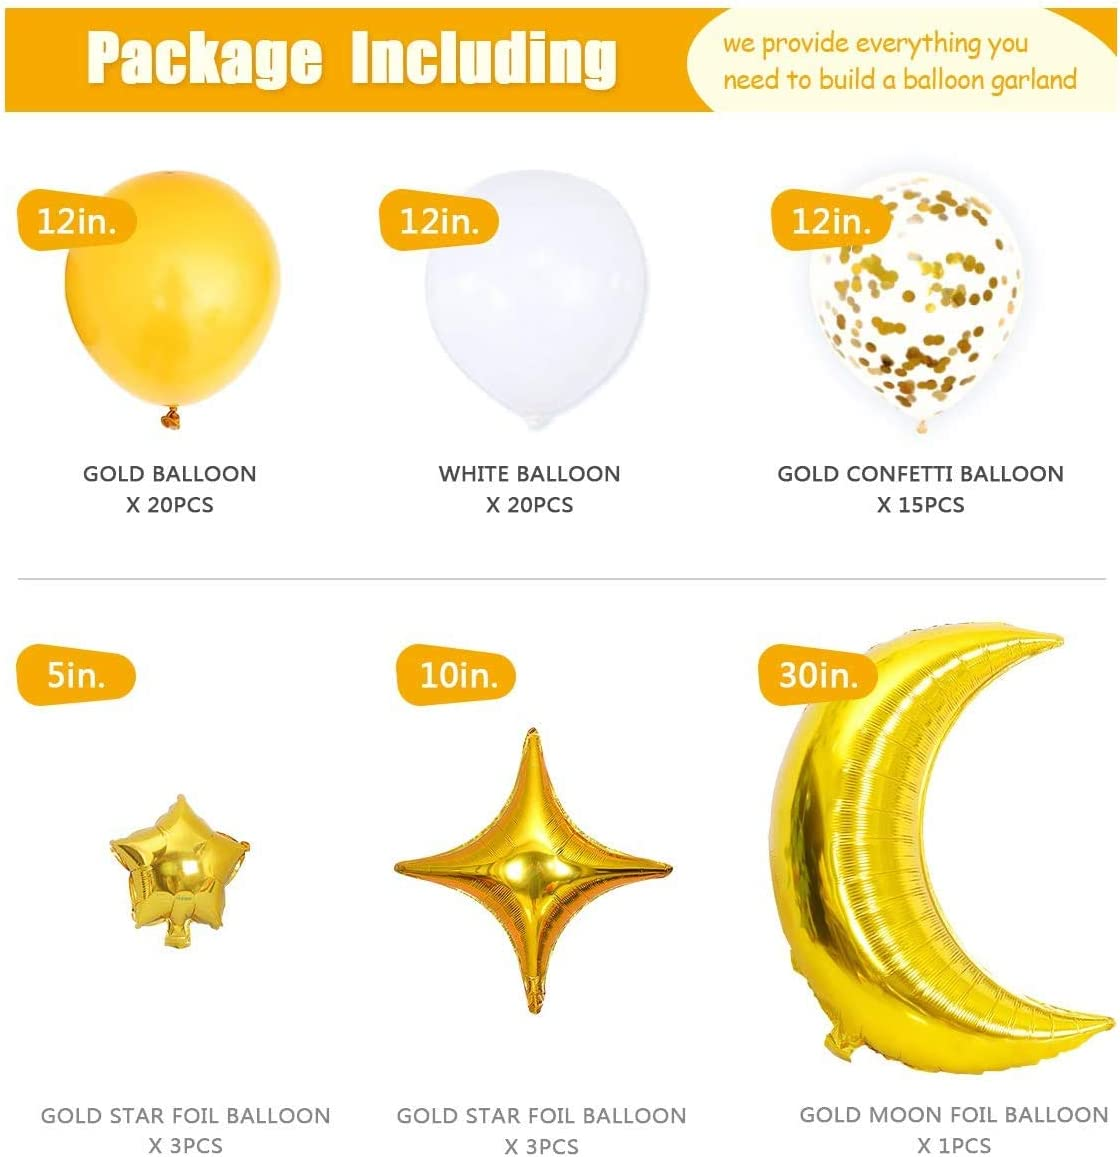 Birthday Party Decorations Garland Arch Banner Gold Star /& Moon Foil Balloon Including Star Garland Confetti Balloon /& White Balloon for Baby Shower,Gender Reveal Birthday Party Twinkle Twinkle Little Star Decorations